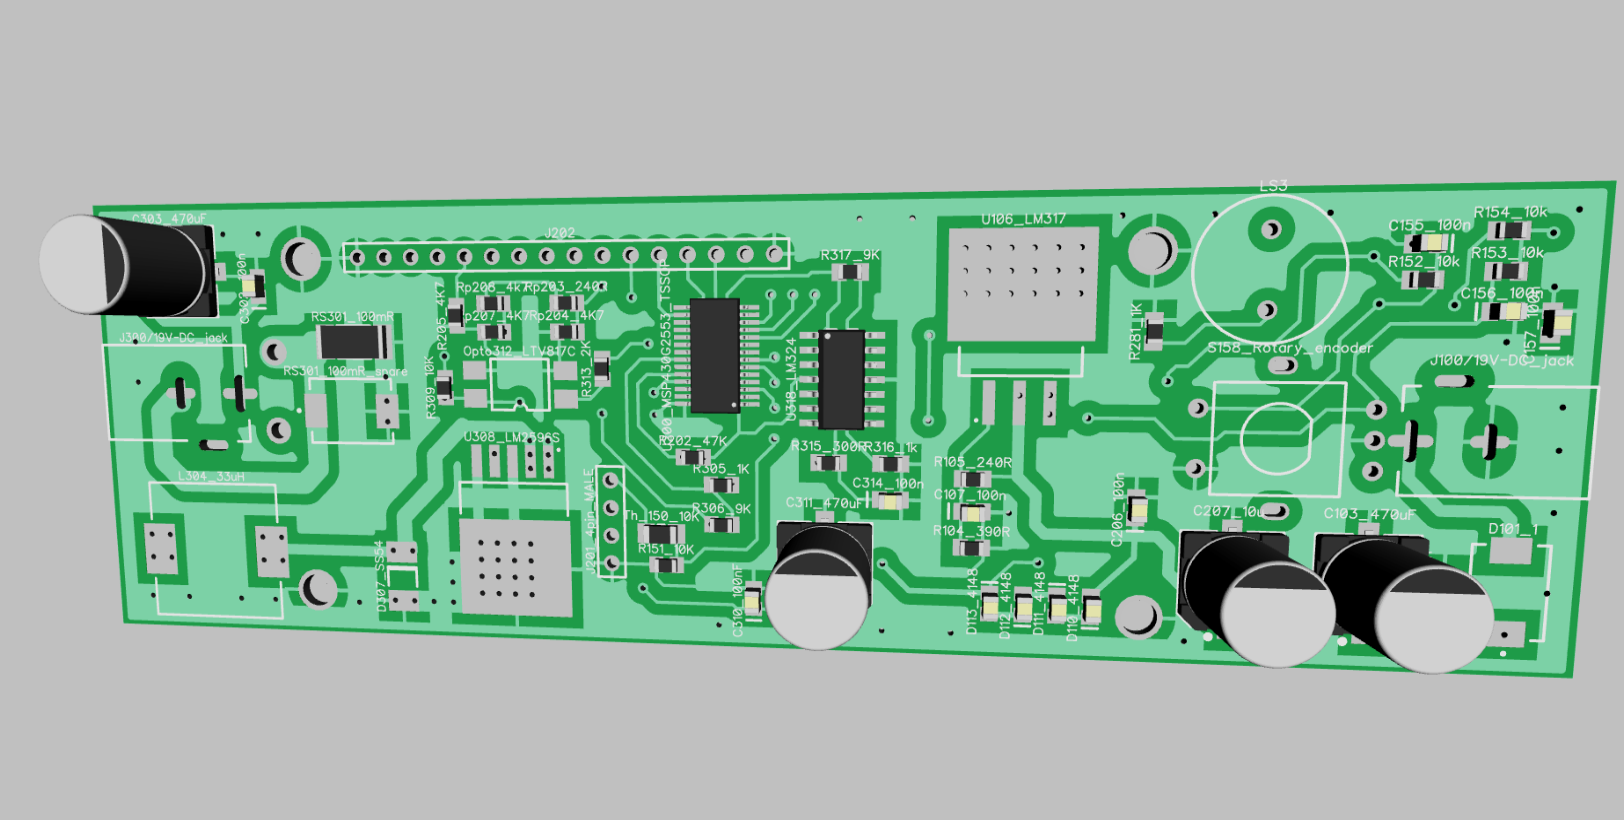 Scorpion 30 Band Spectrum Analyzer Circuit Using Op Amps Scorpionz This Pcb Is Designed And Rendered Diptrace Hopefully I Will Be Able To Take Out Some Of The Heat Those Viases Underneath Lm2596